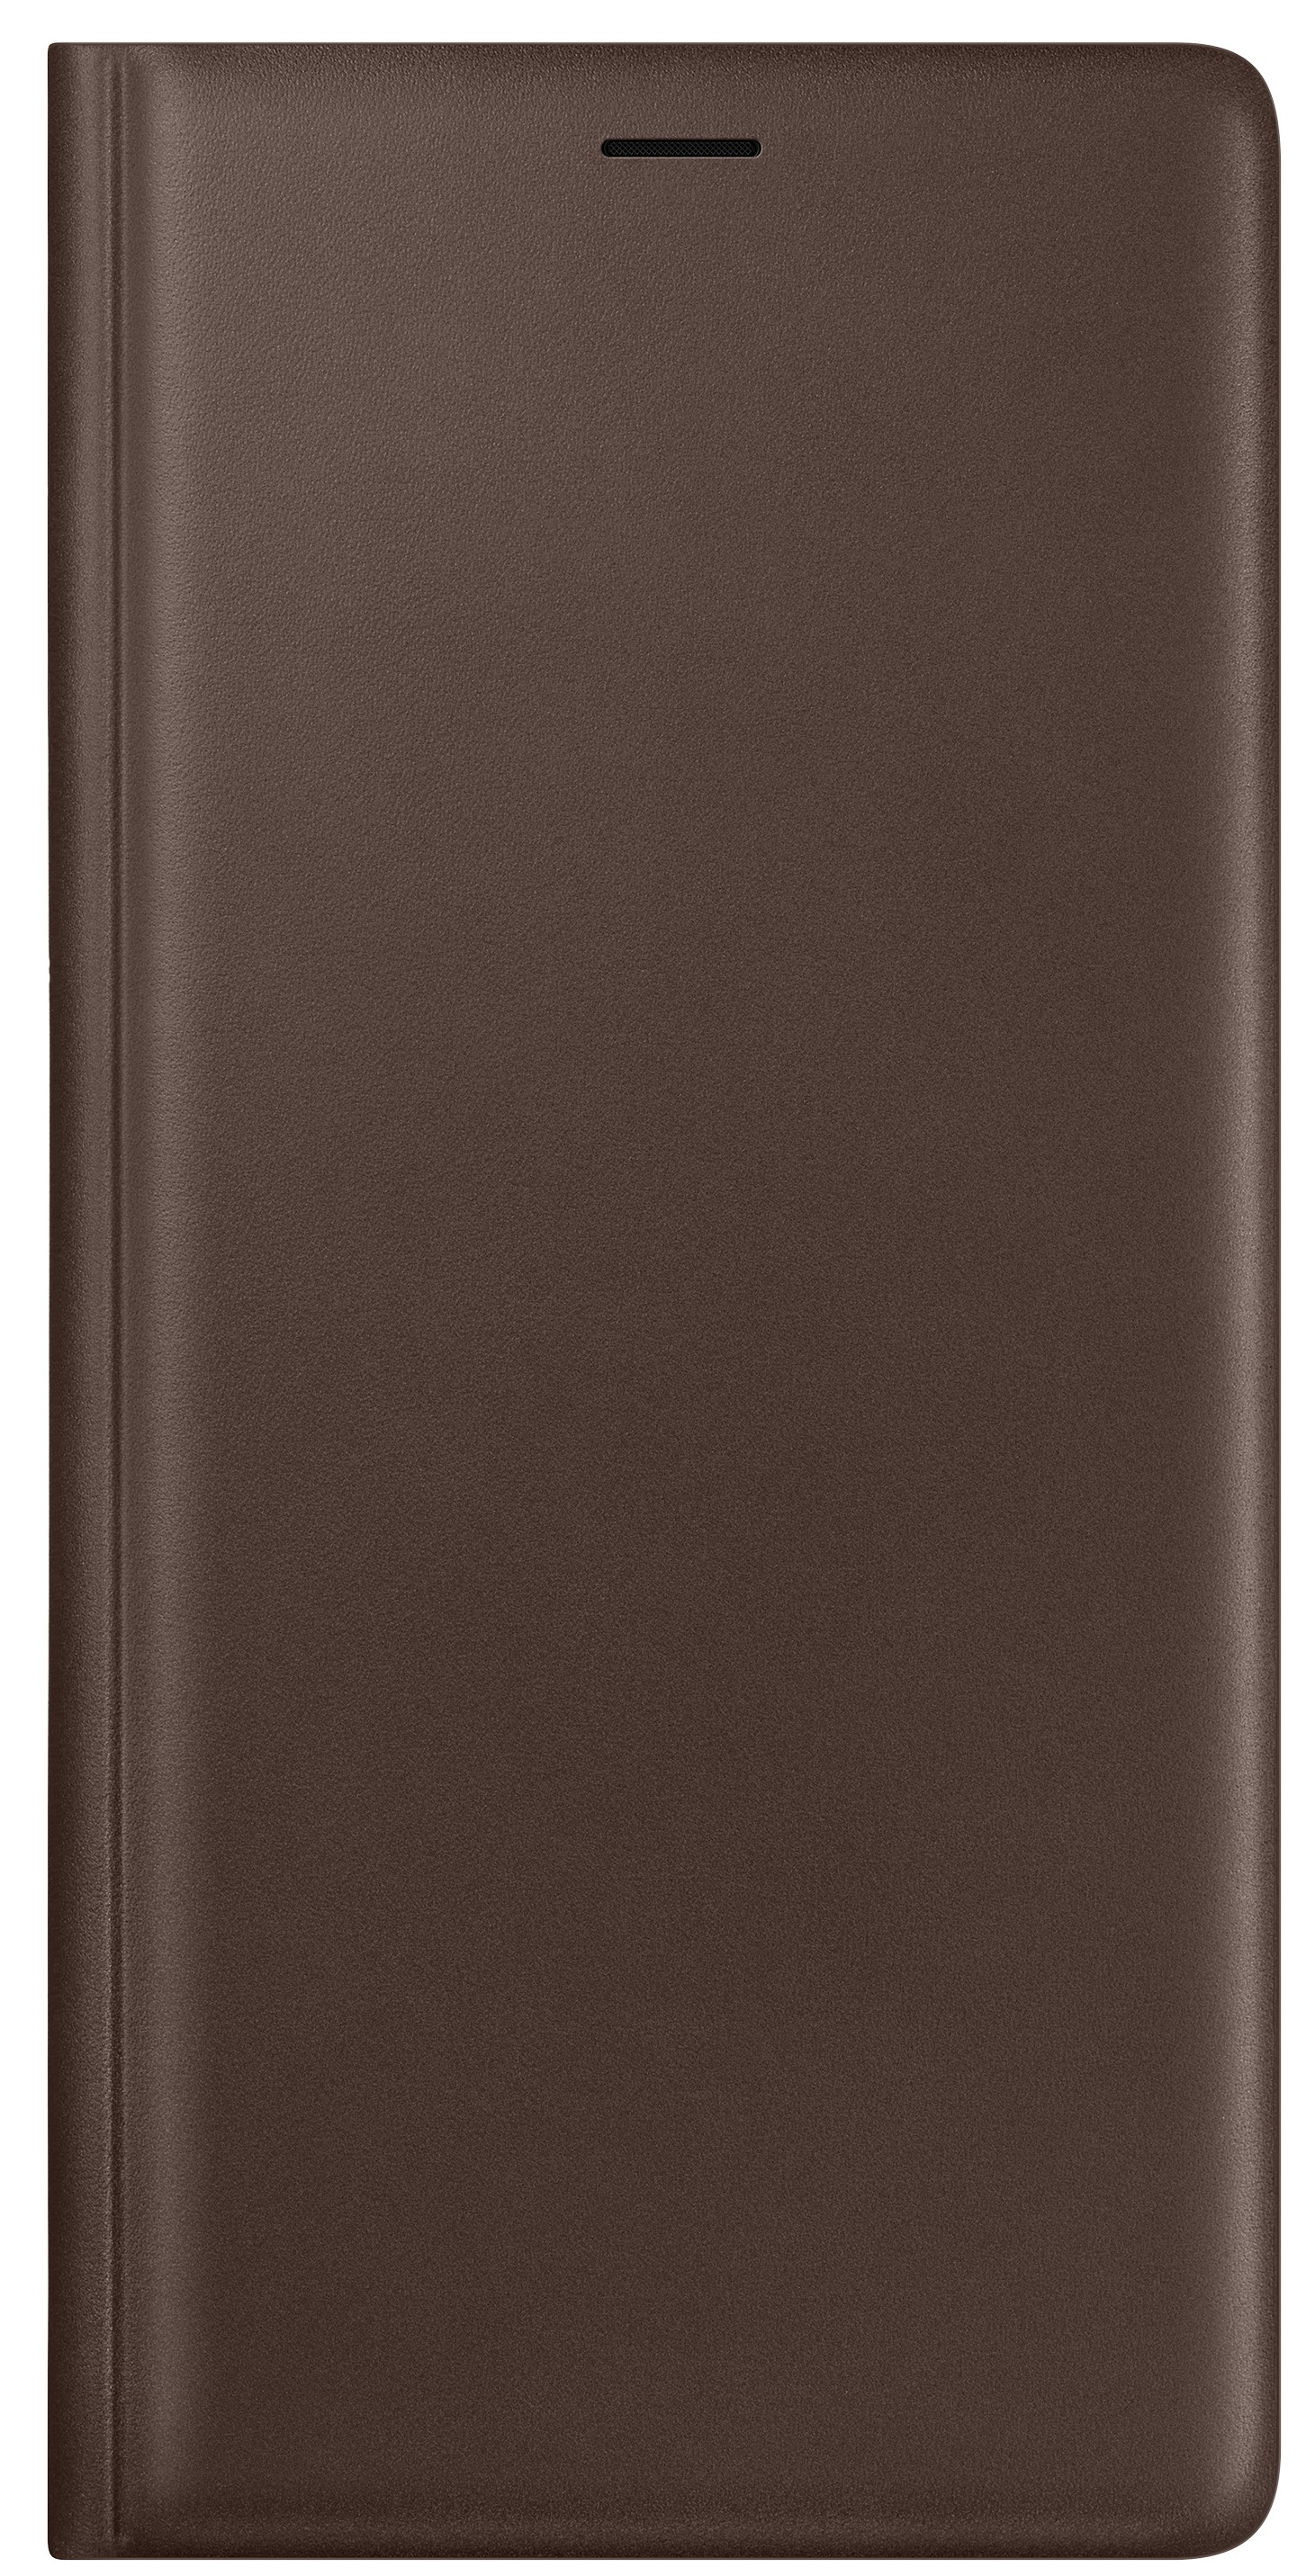 Чехол-книжка Samsung для Galaxy Note 9 EF-WN960LAEGRU Wallet Cover Crown brown чехол крышка samsung silicone cover ef pn960tbegru для samsung galaxy note 9 черный